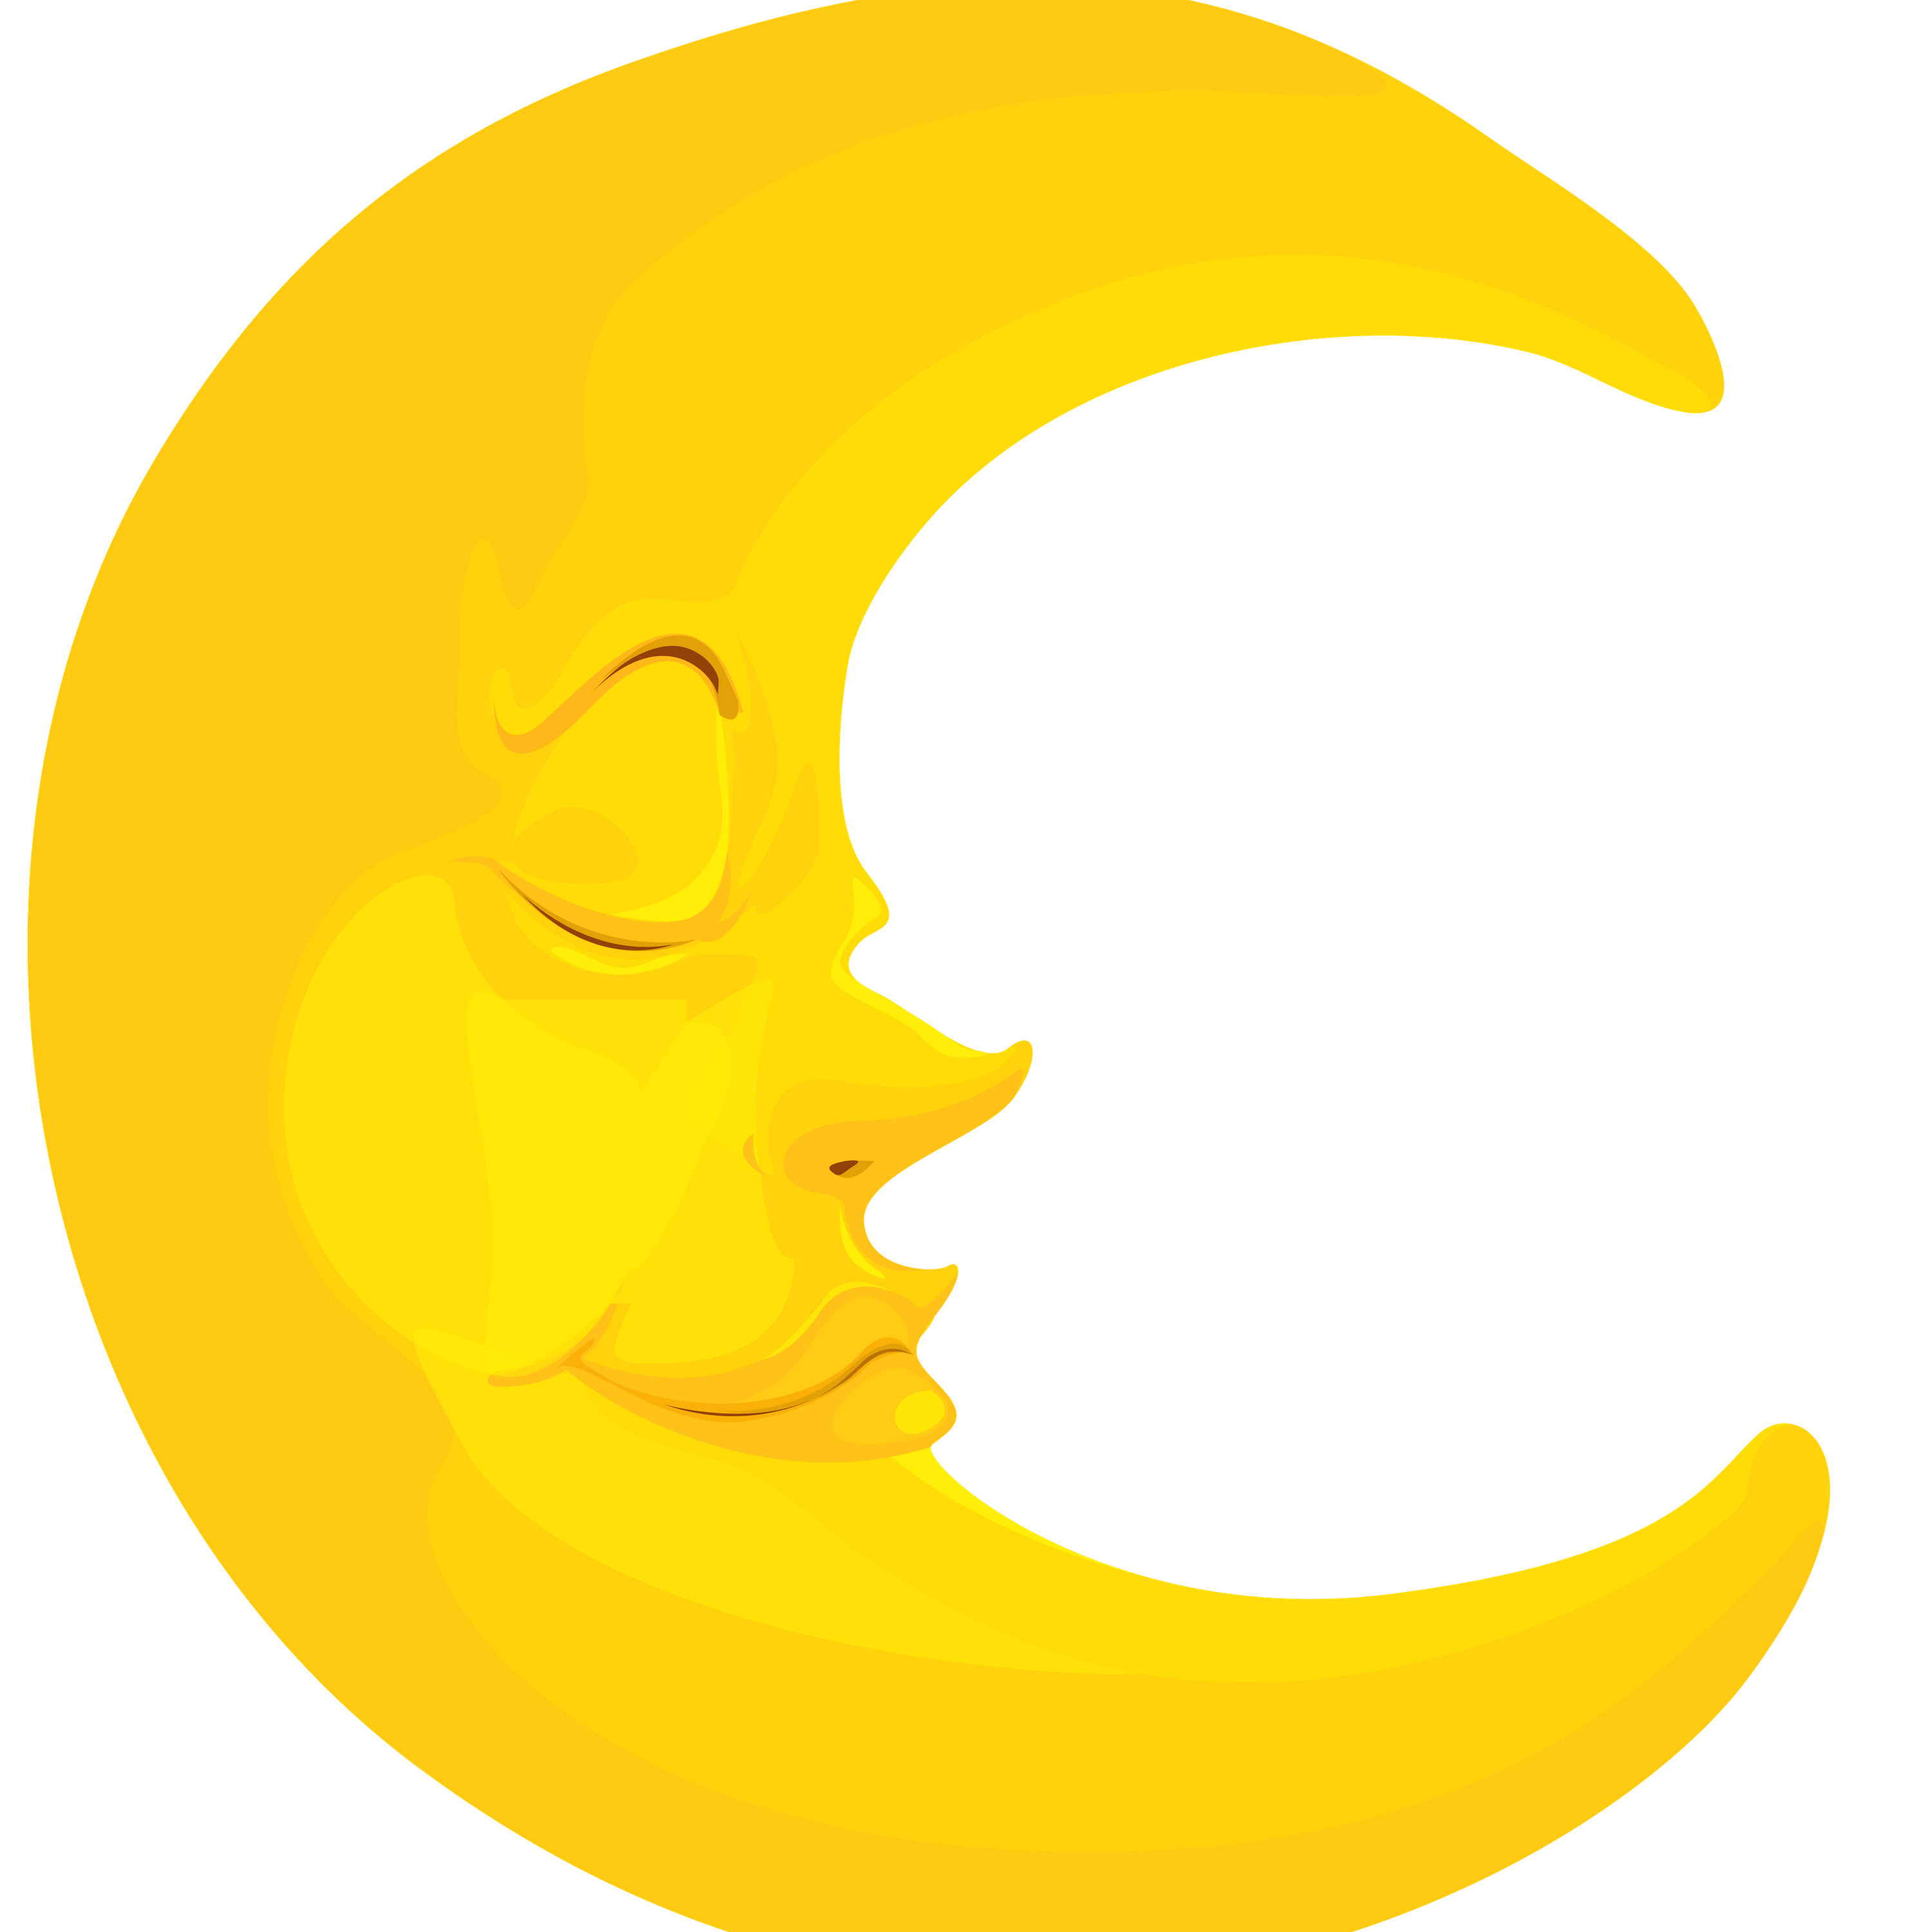 Crescent clipart #1, Download drawings